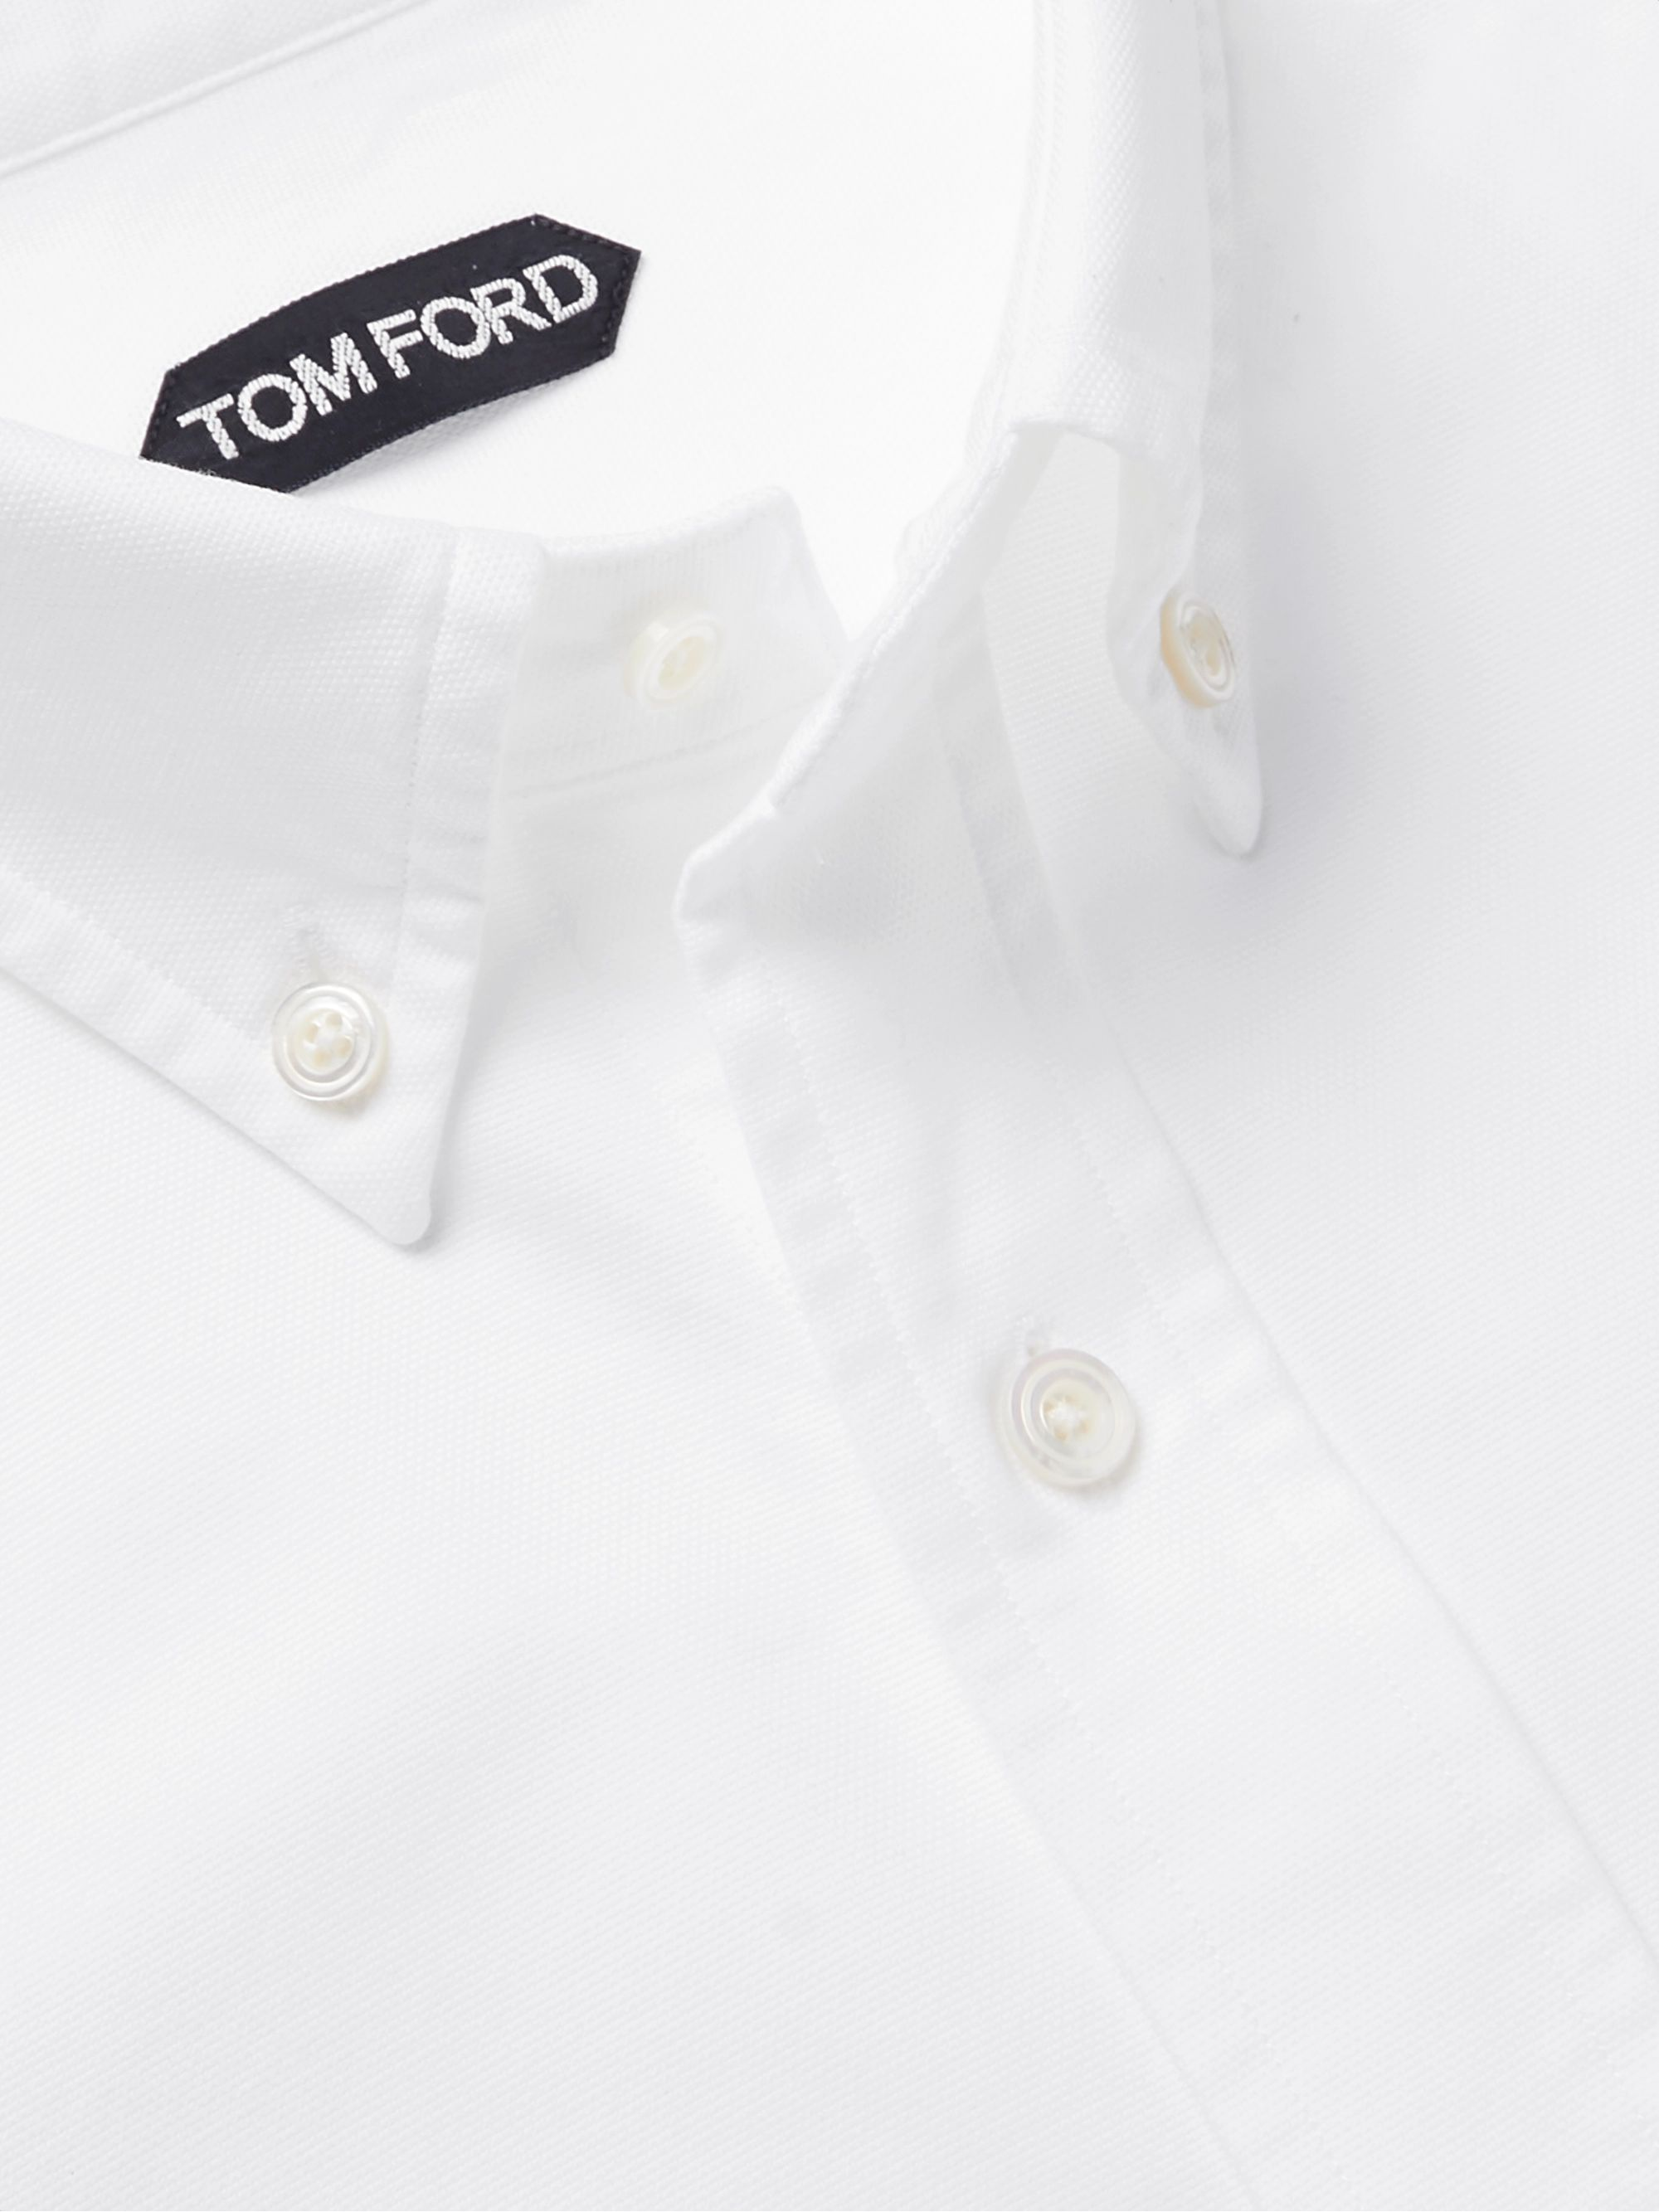 TOM FORD Slim-Fit Button-Down Collar Cotton Oxford Shirt